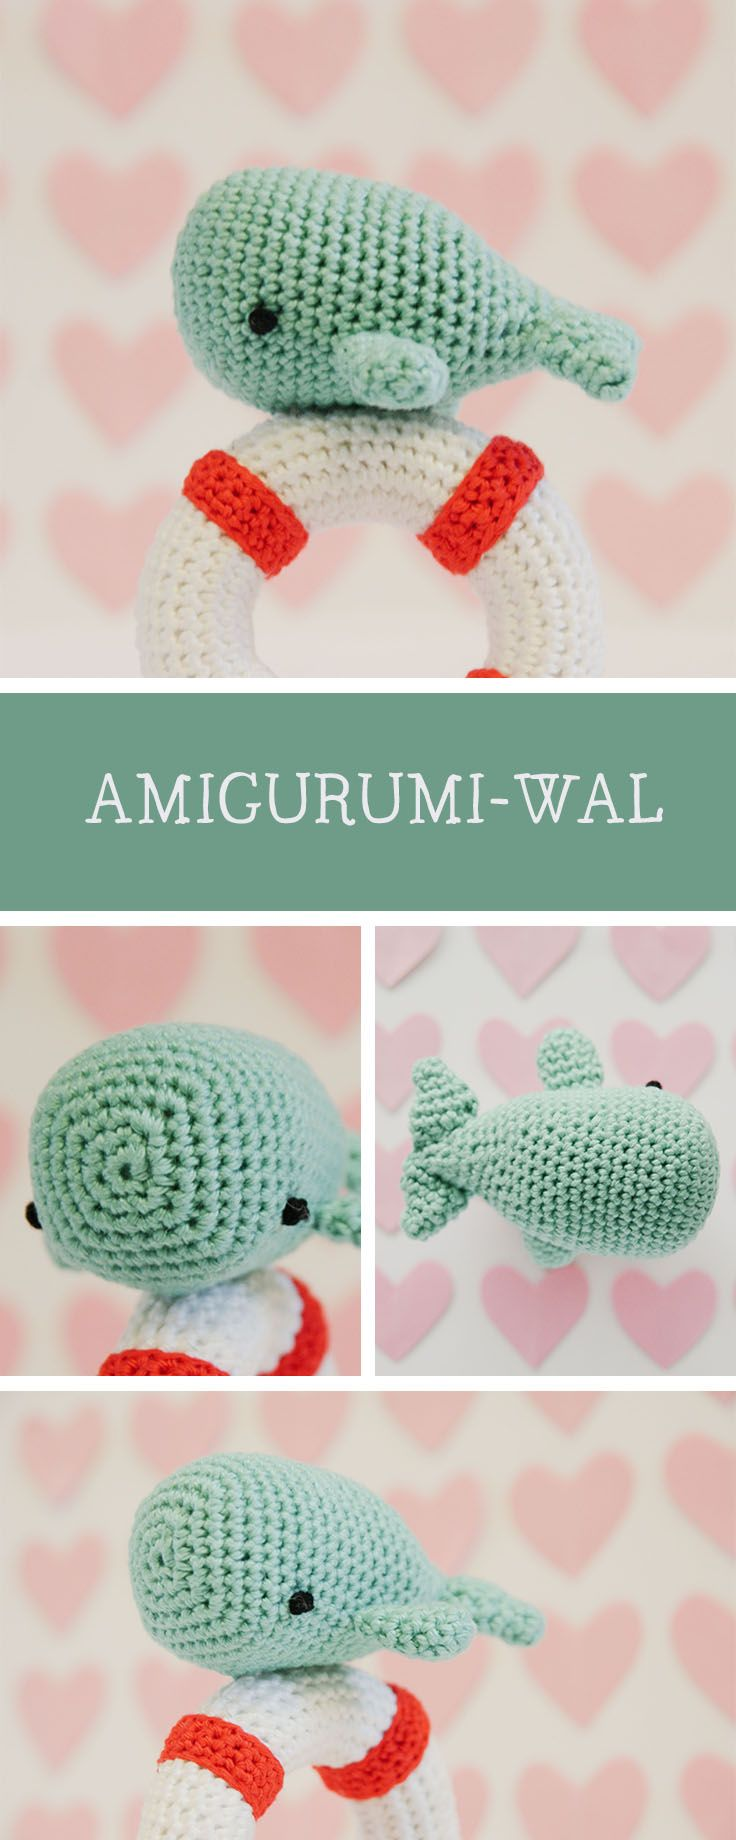 120 best Amigurumi images on Pinterest | Häkelpuppen, Häkeltiere und ...